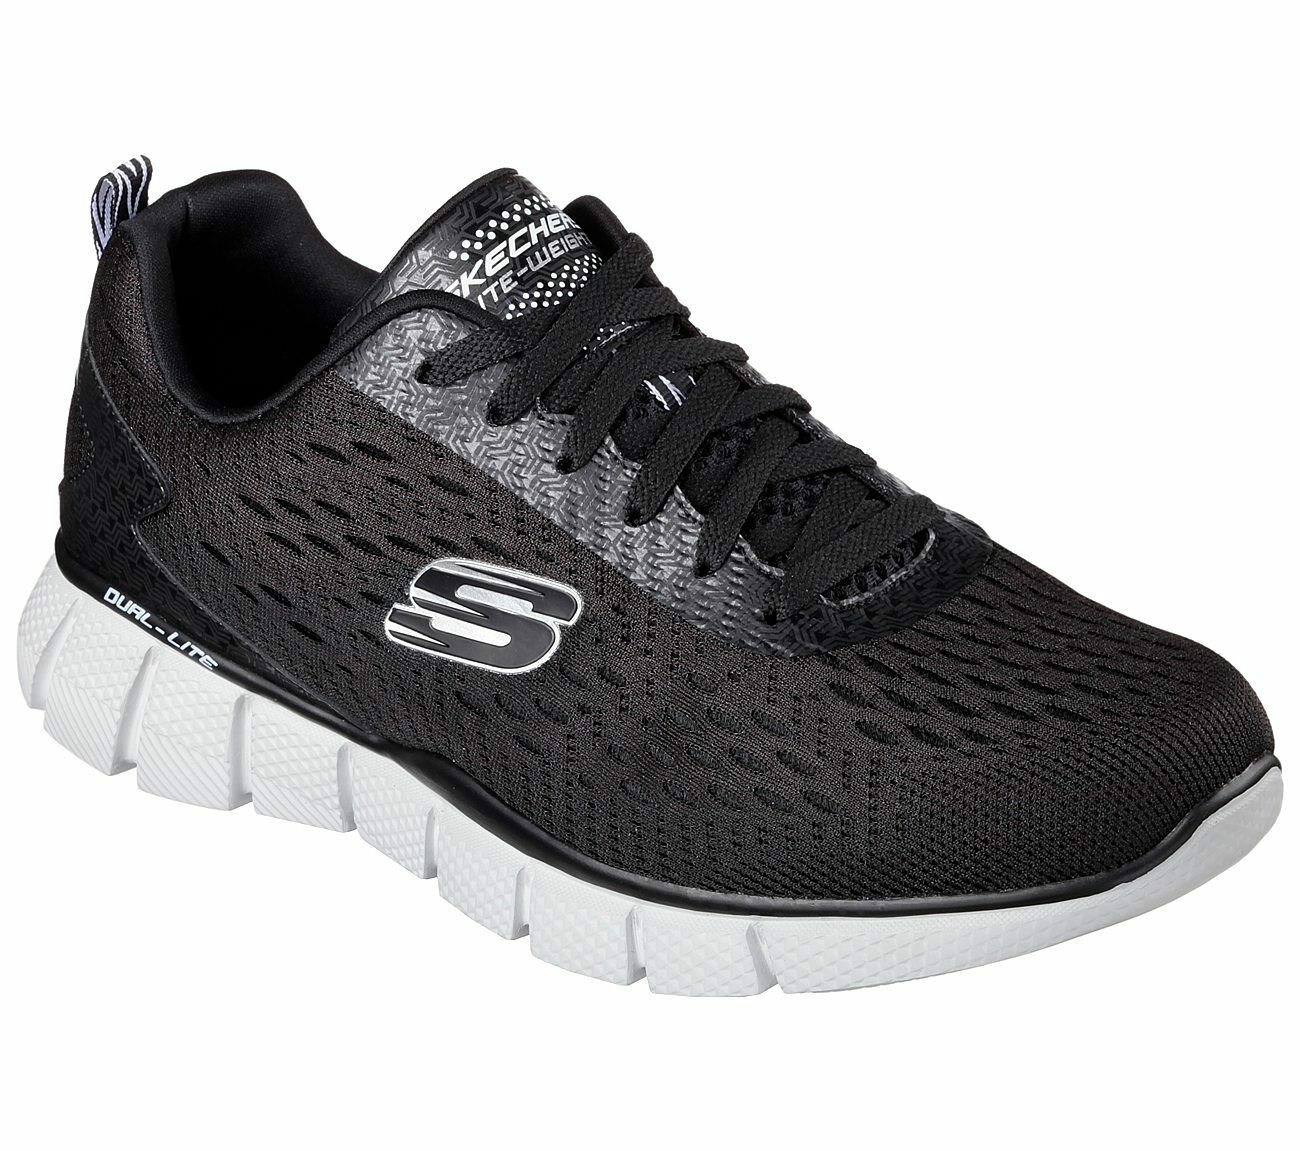 New Mens Skechers Equalizer 2.0 Settle The Score Shoe Style 51529 Blk/Gry 98u dr Cheap and beautiful fashion